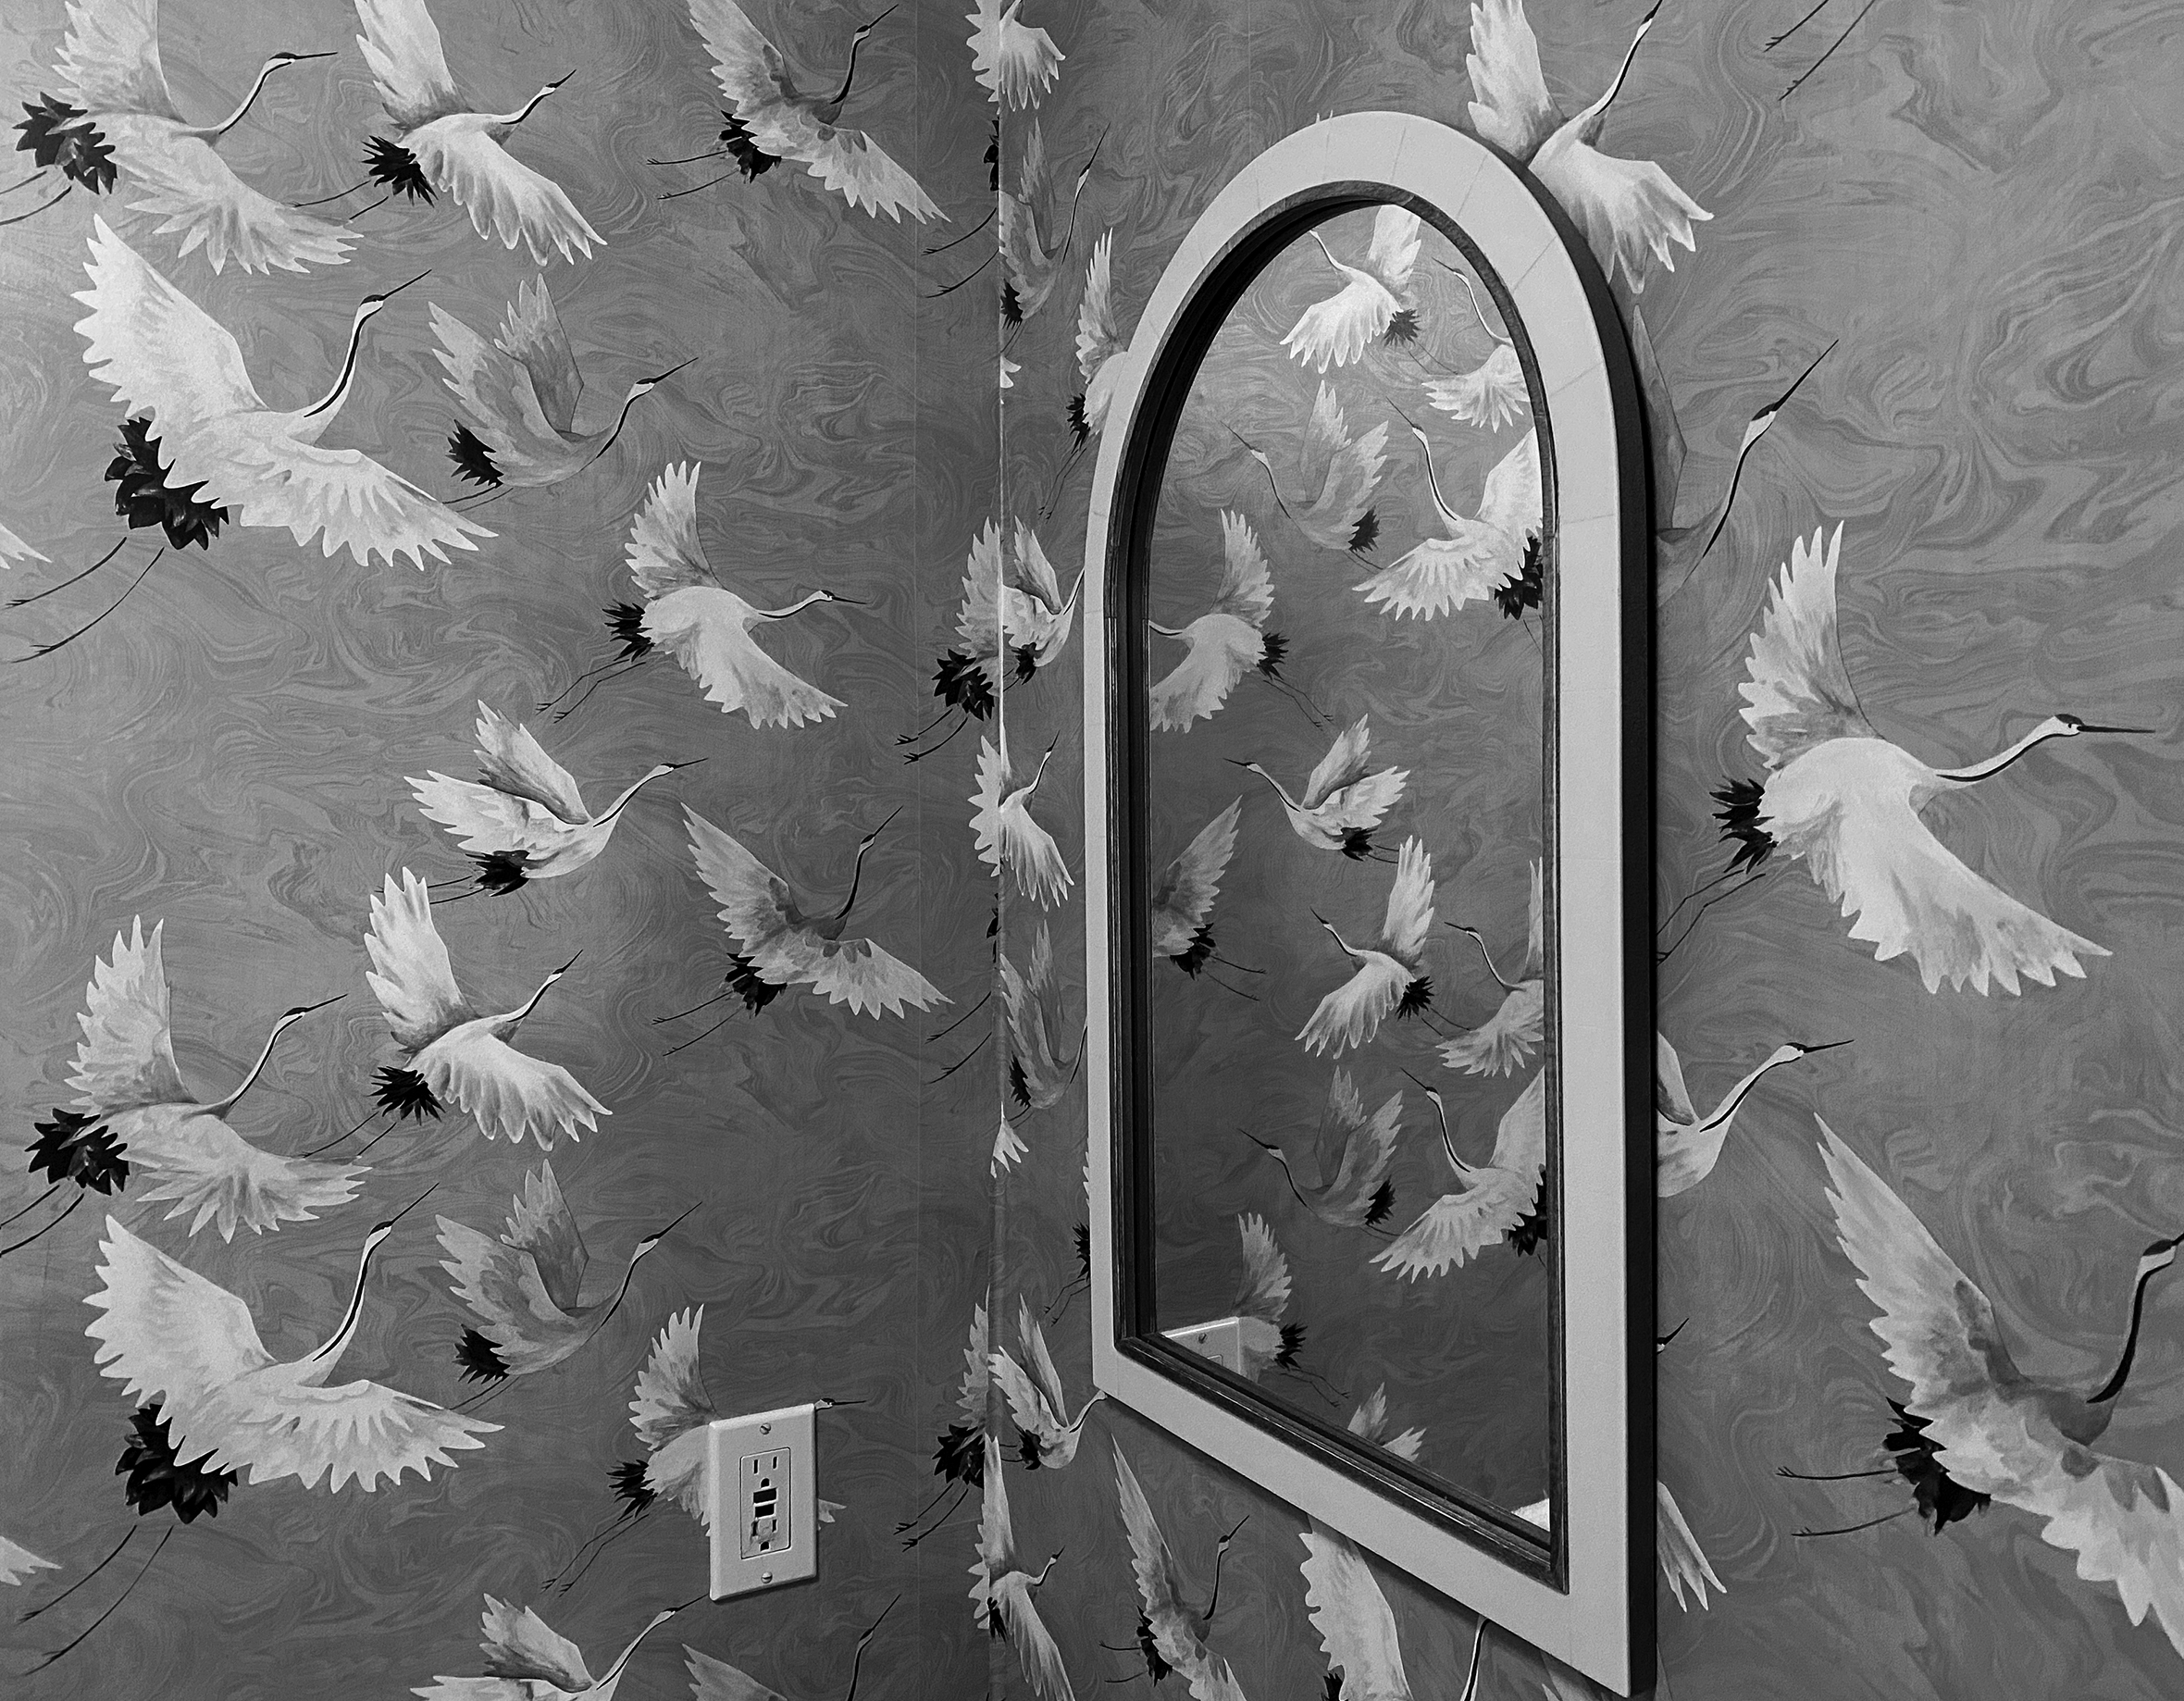 An arched mirror next to a corner with wallpaper full of flying cranes.